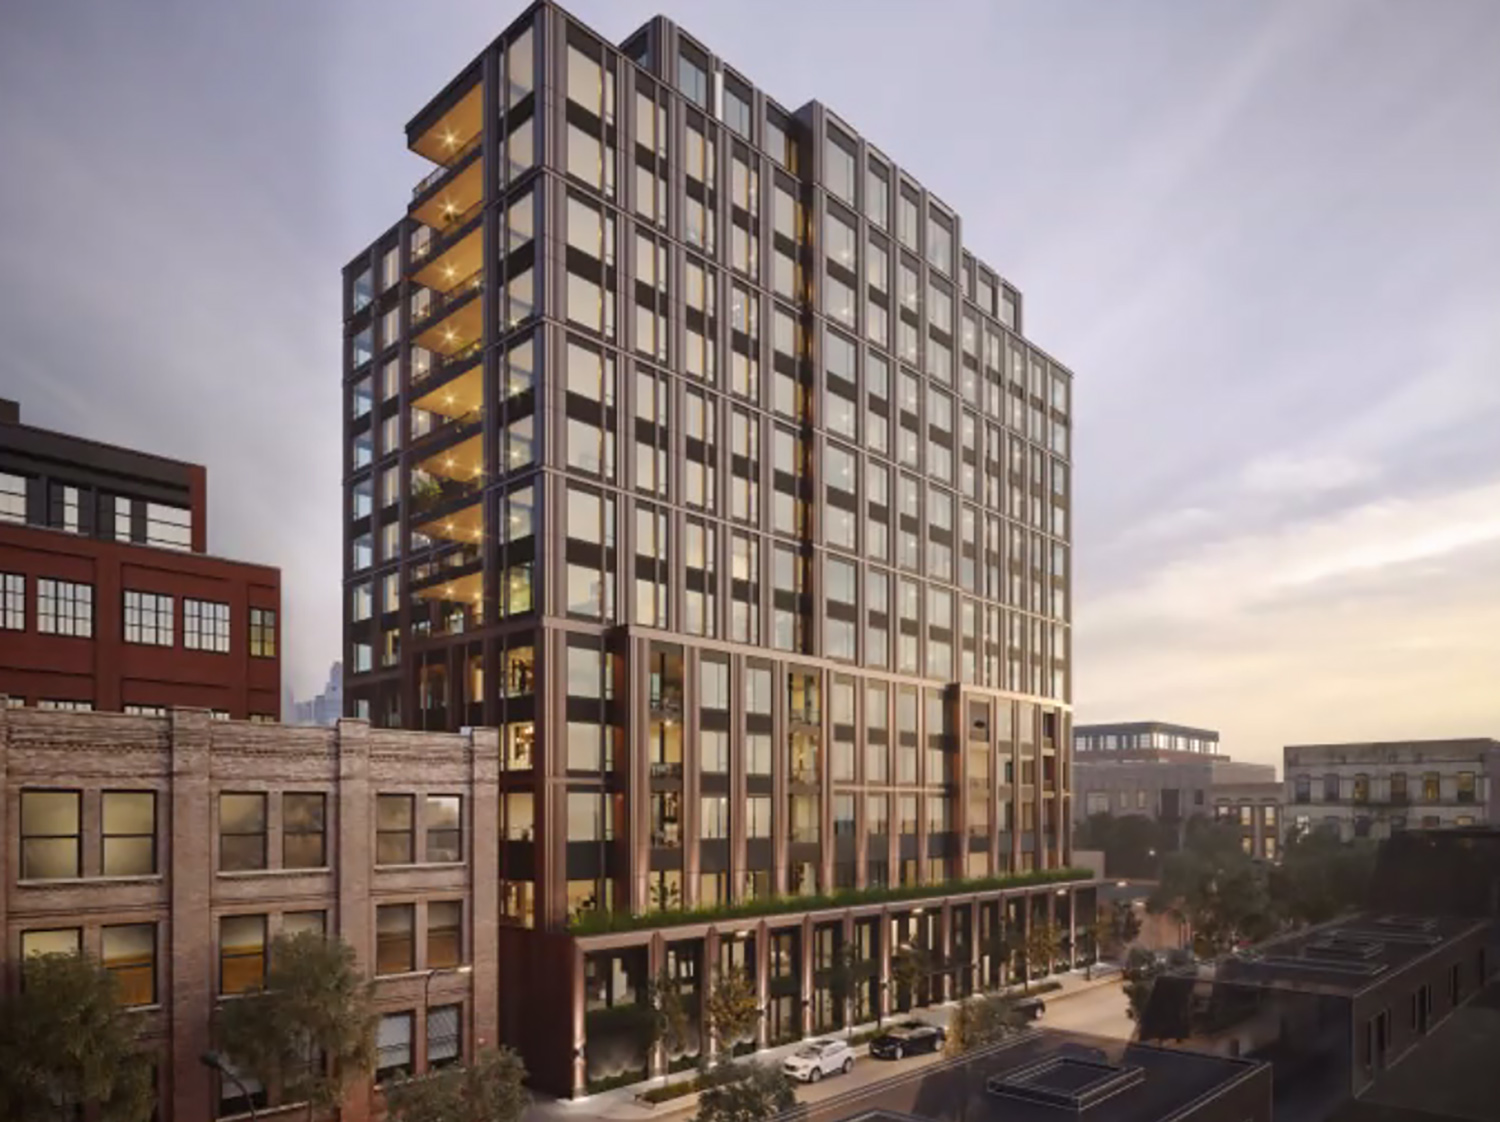 19 N May Street. Rendering by Lamar Johnson Collaborative